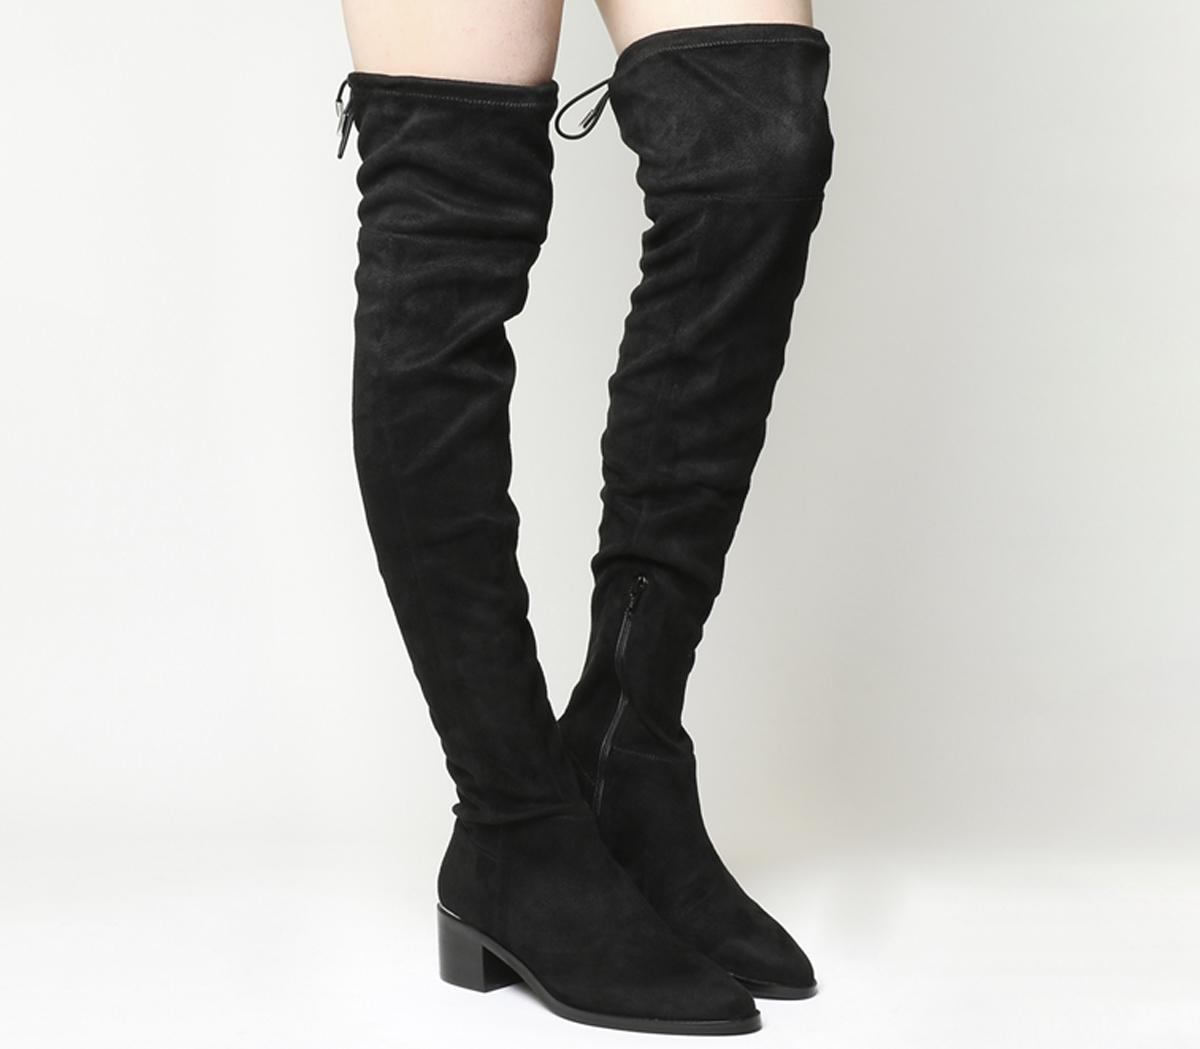 Krow Over the Knee Boots